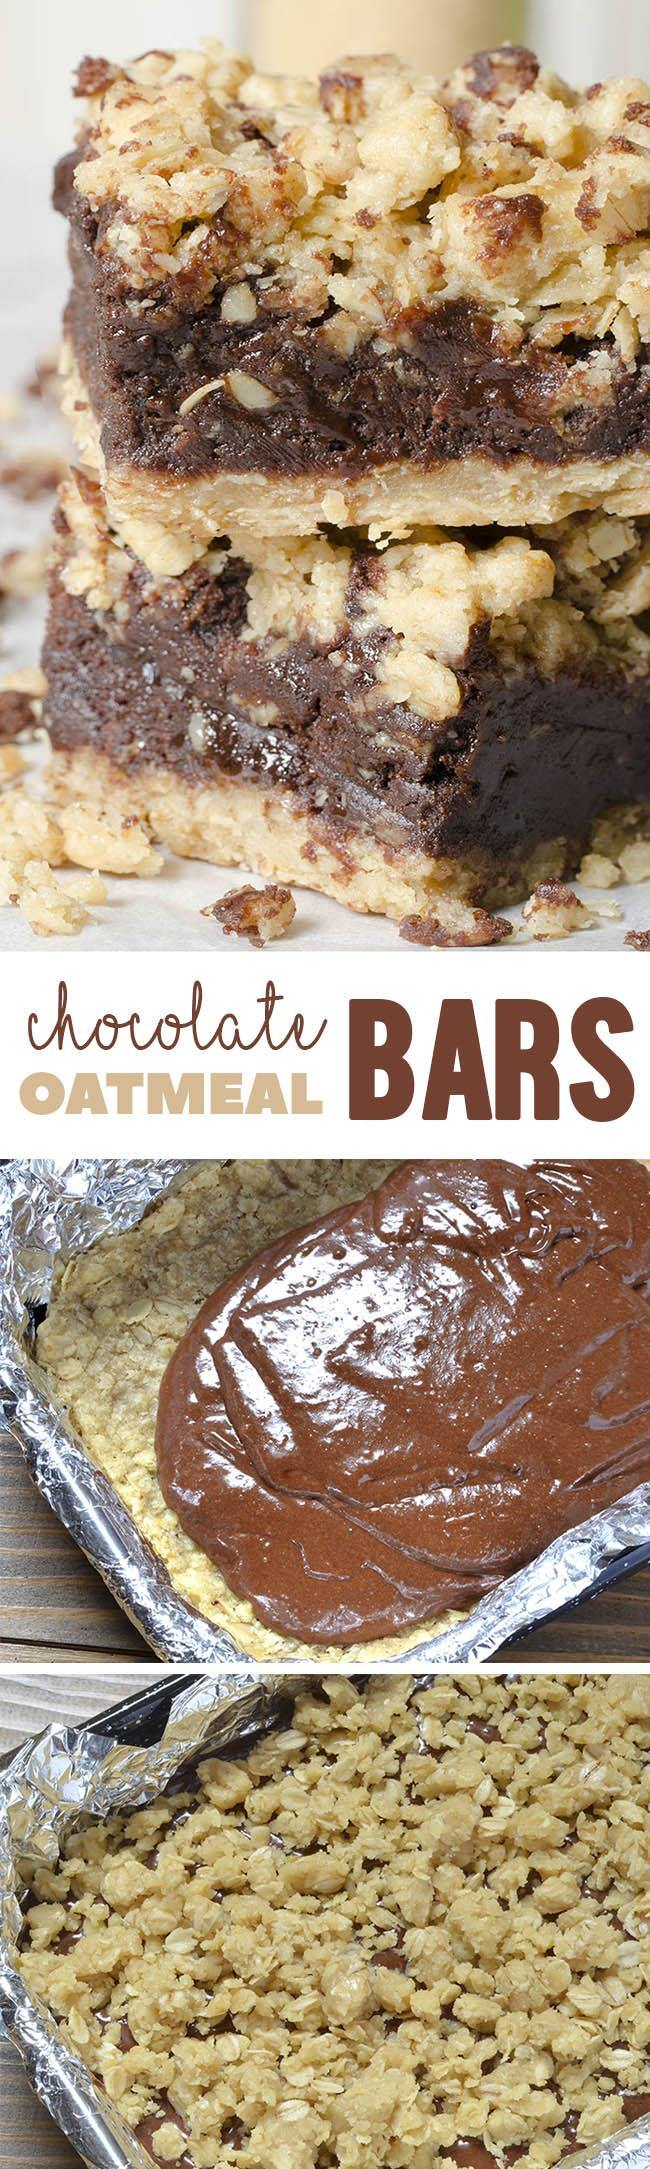 This rich chocolate oatmeal bars recipe is an real keeper recipe. Three layers of chocolatey goodness make these revel bars undeniably delicious. Cut in slices and grab for an on-the-go snack.